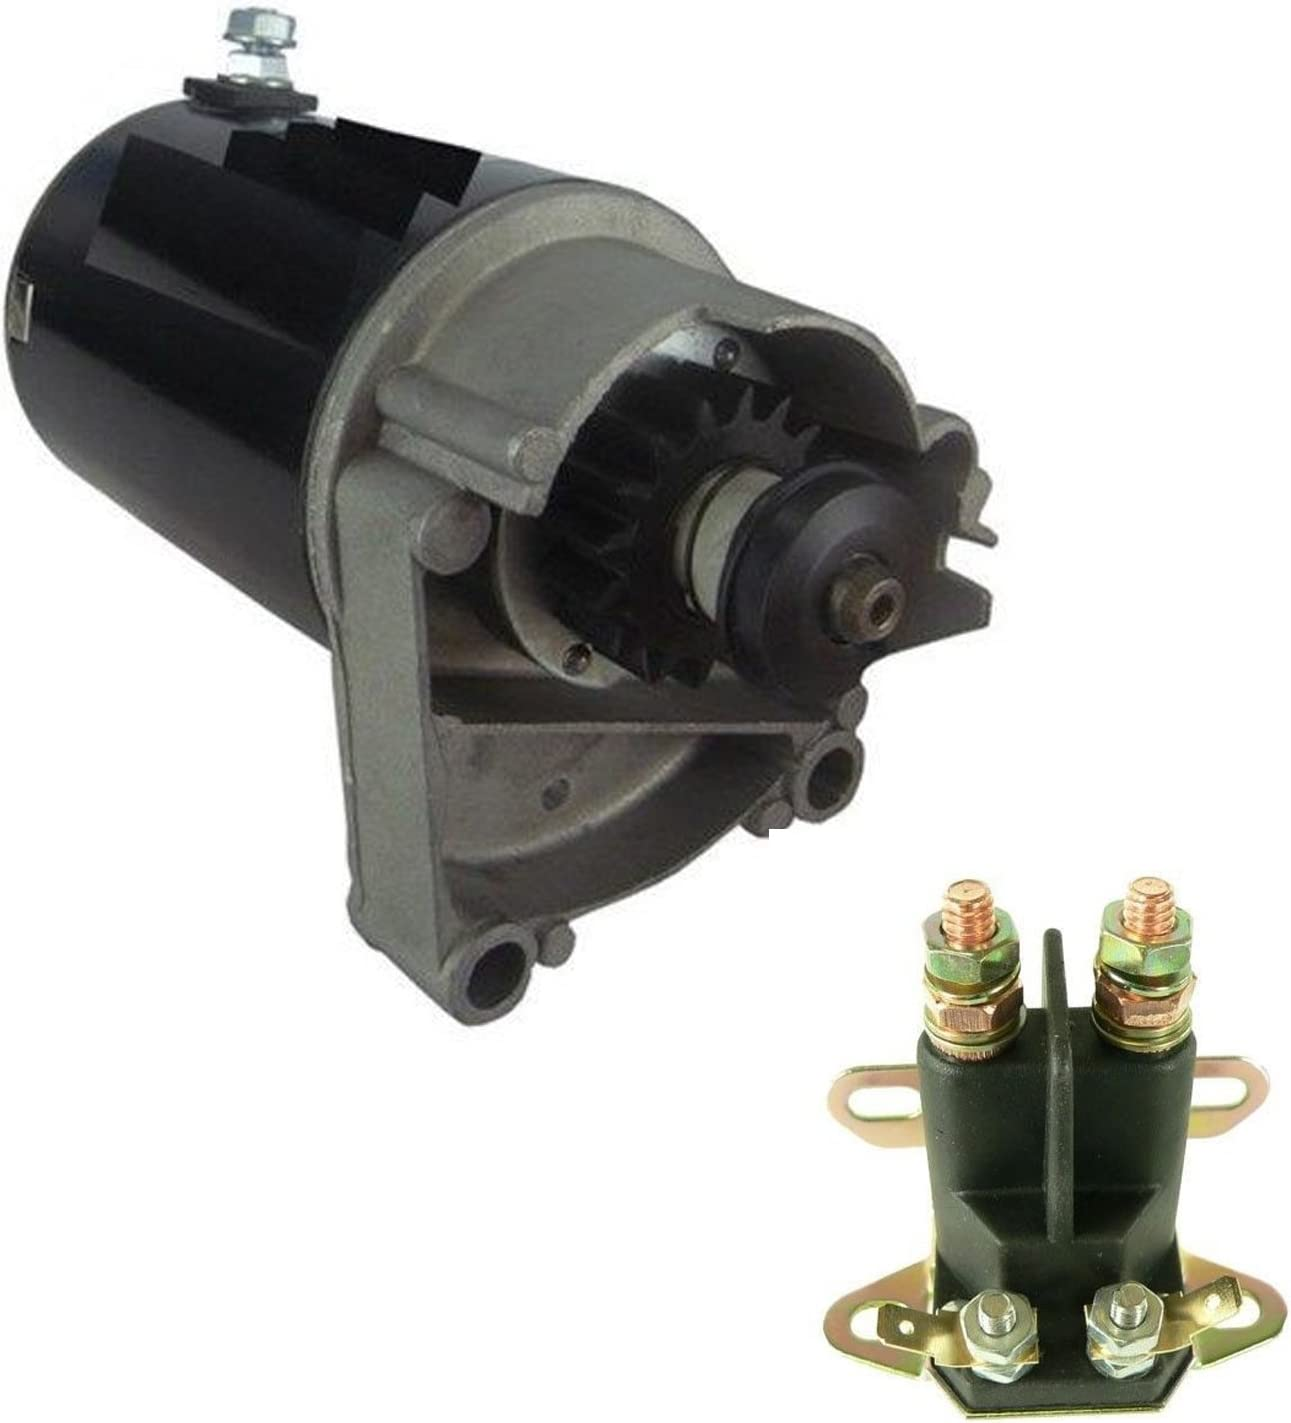 Amazon.com: New Starter Solenoid Kit de John Deere para ...